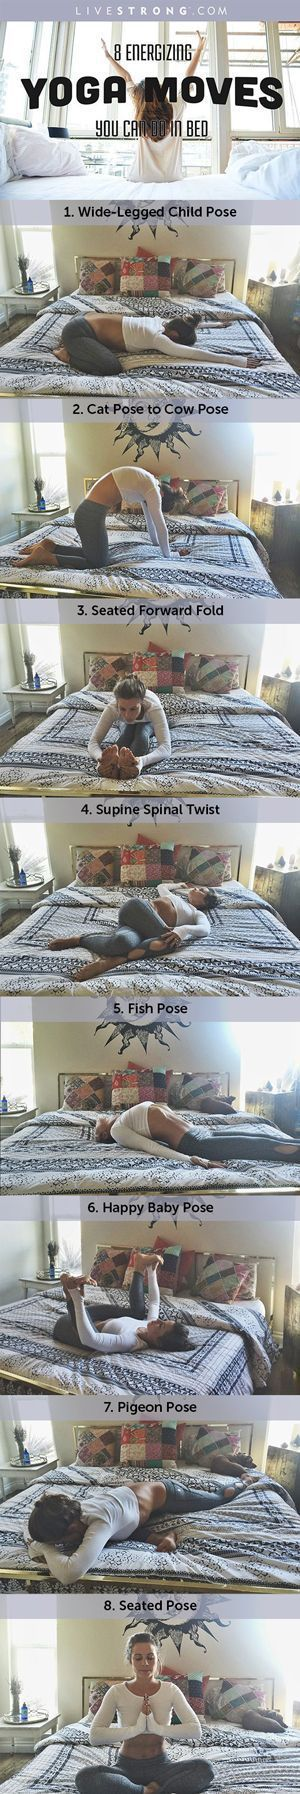 8 Energizing Yoga Moves You Can Do in Bed